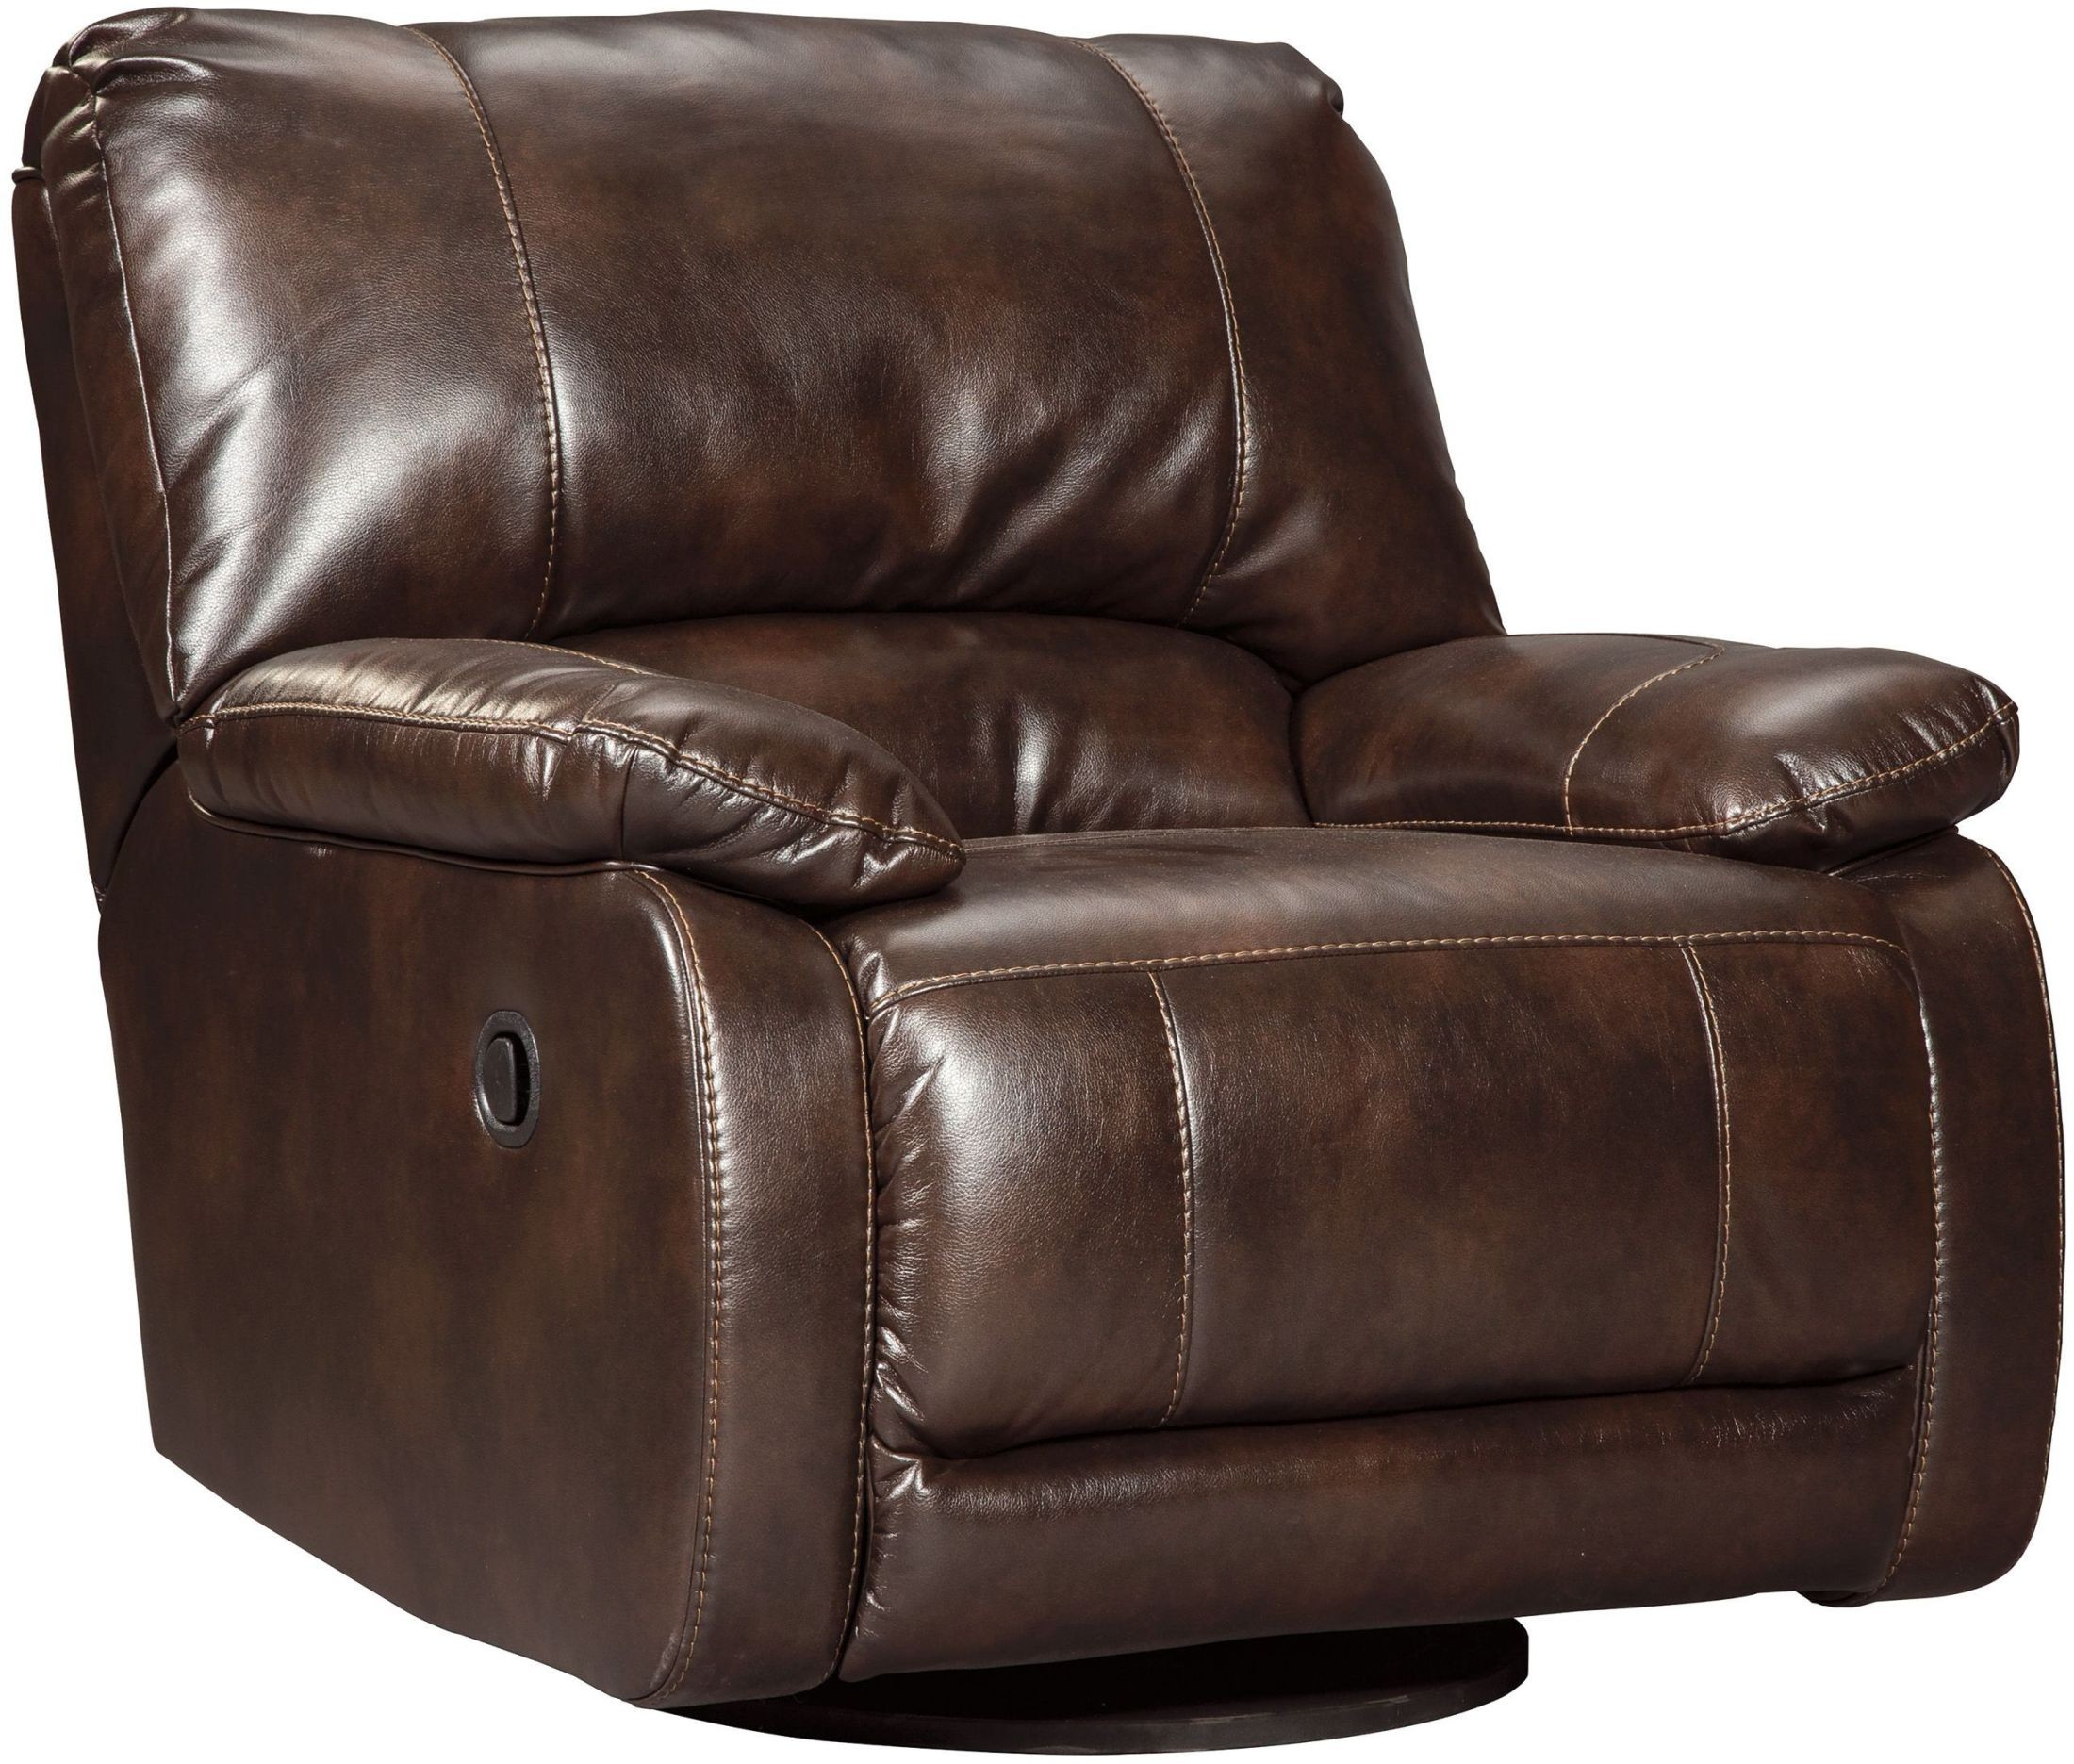 hallettsville saddle swivel glider recliner from ashley coleman